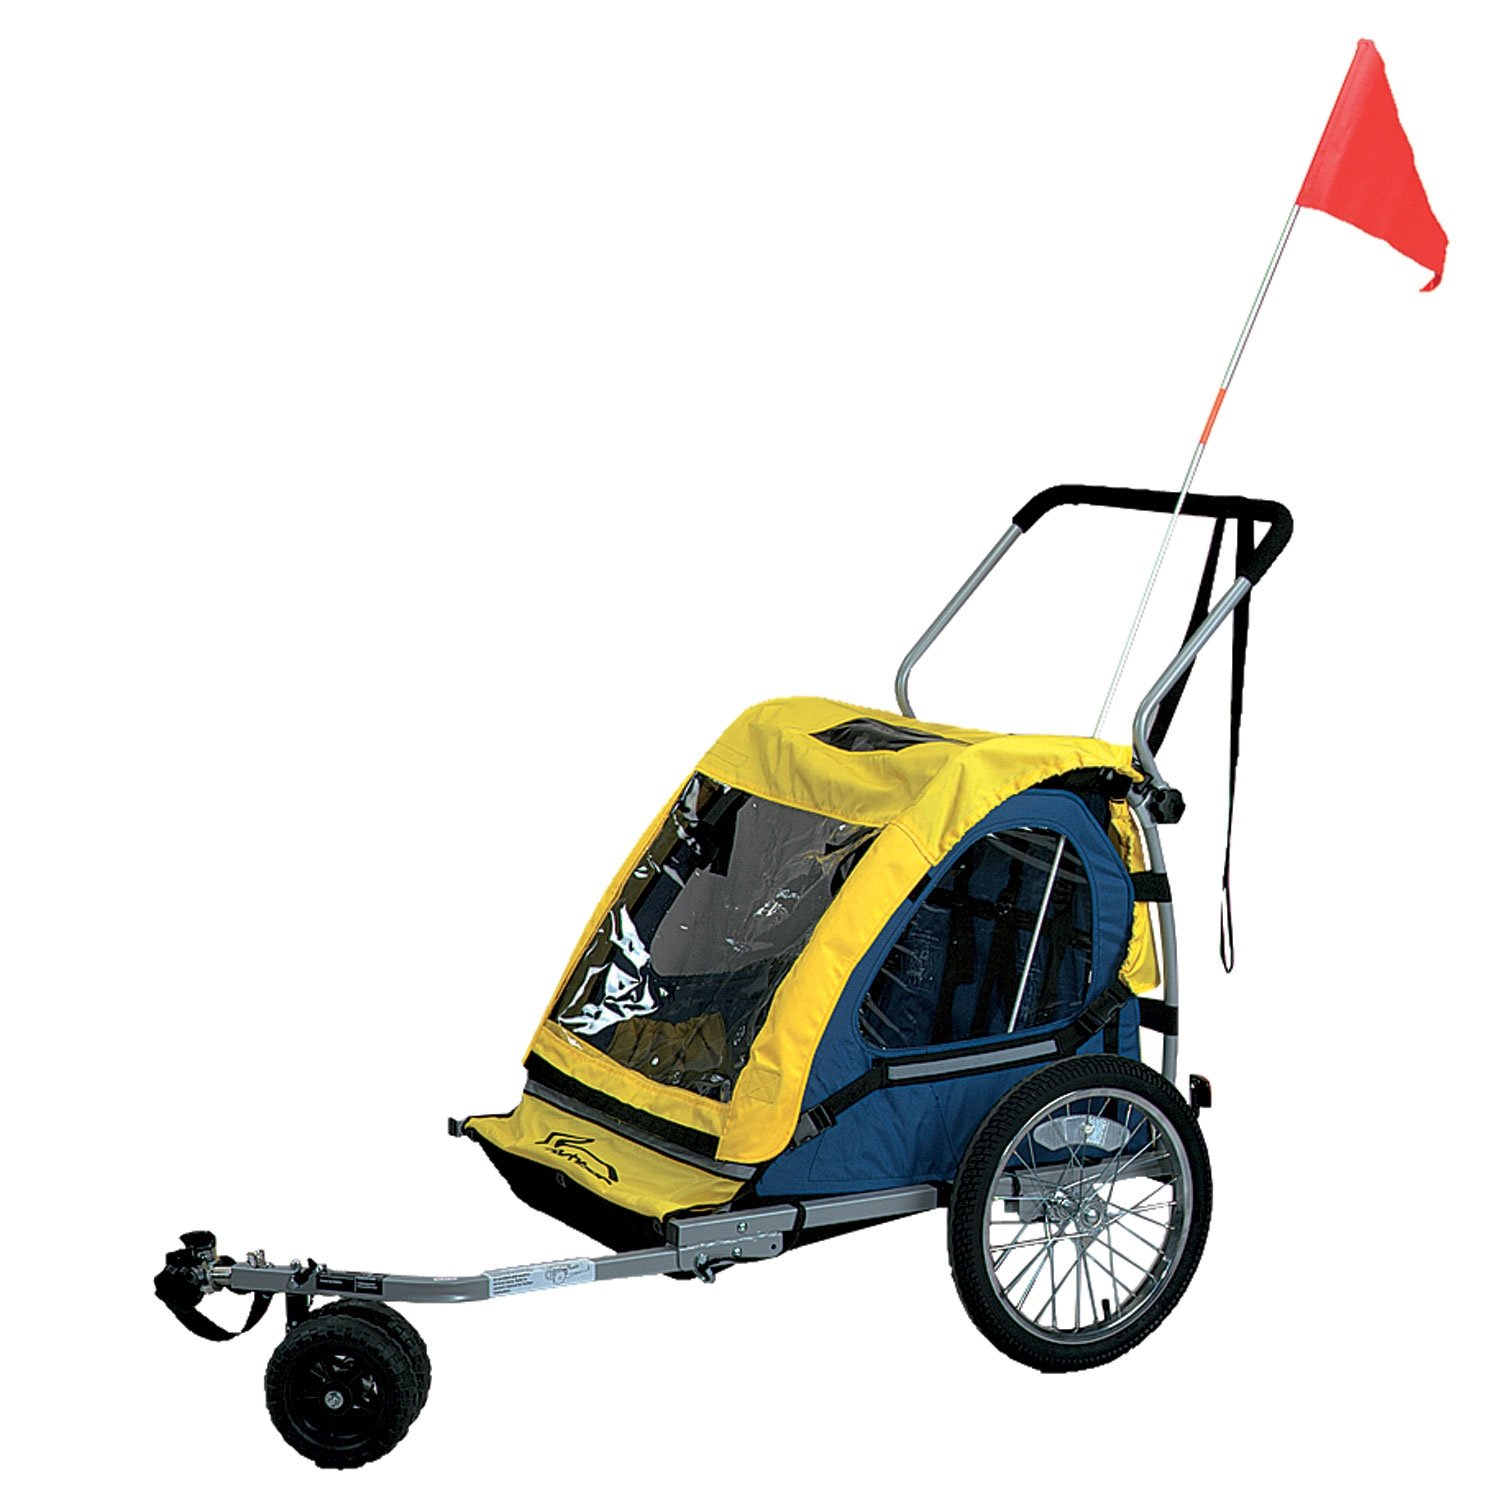 Nashbar Kid Karriage Stroller Attachment by Nashbar (Image #1)